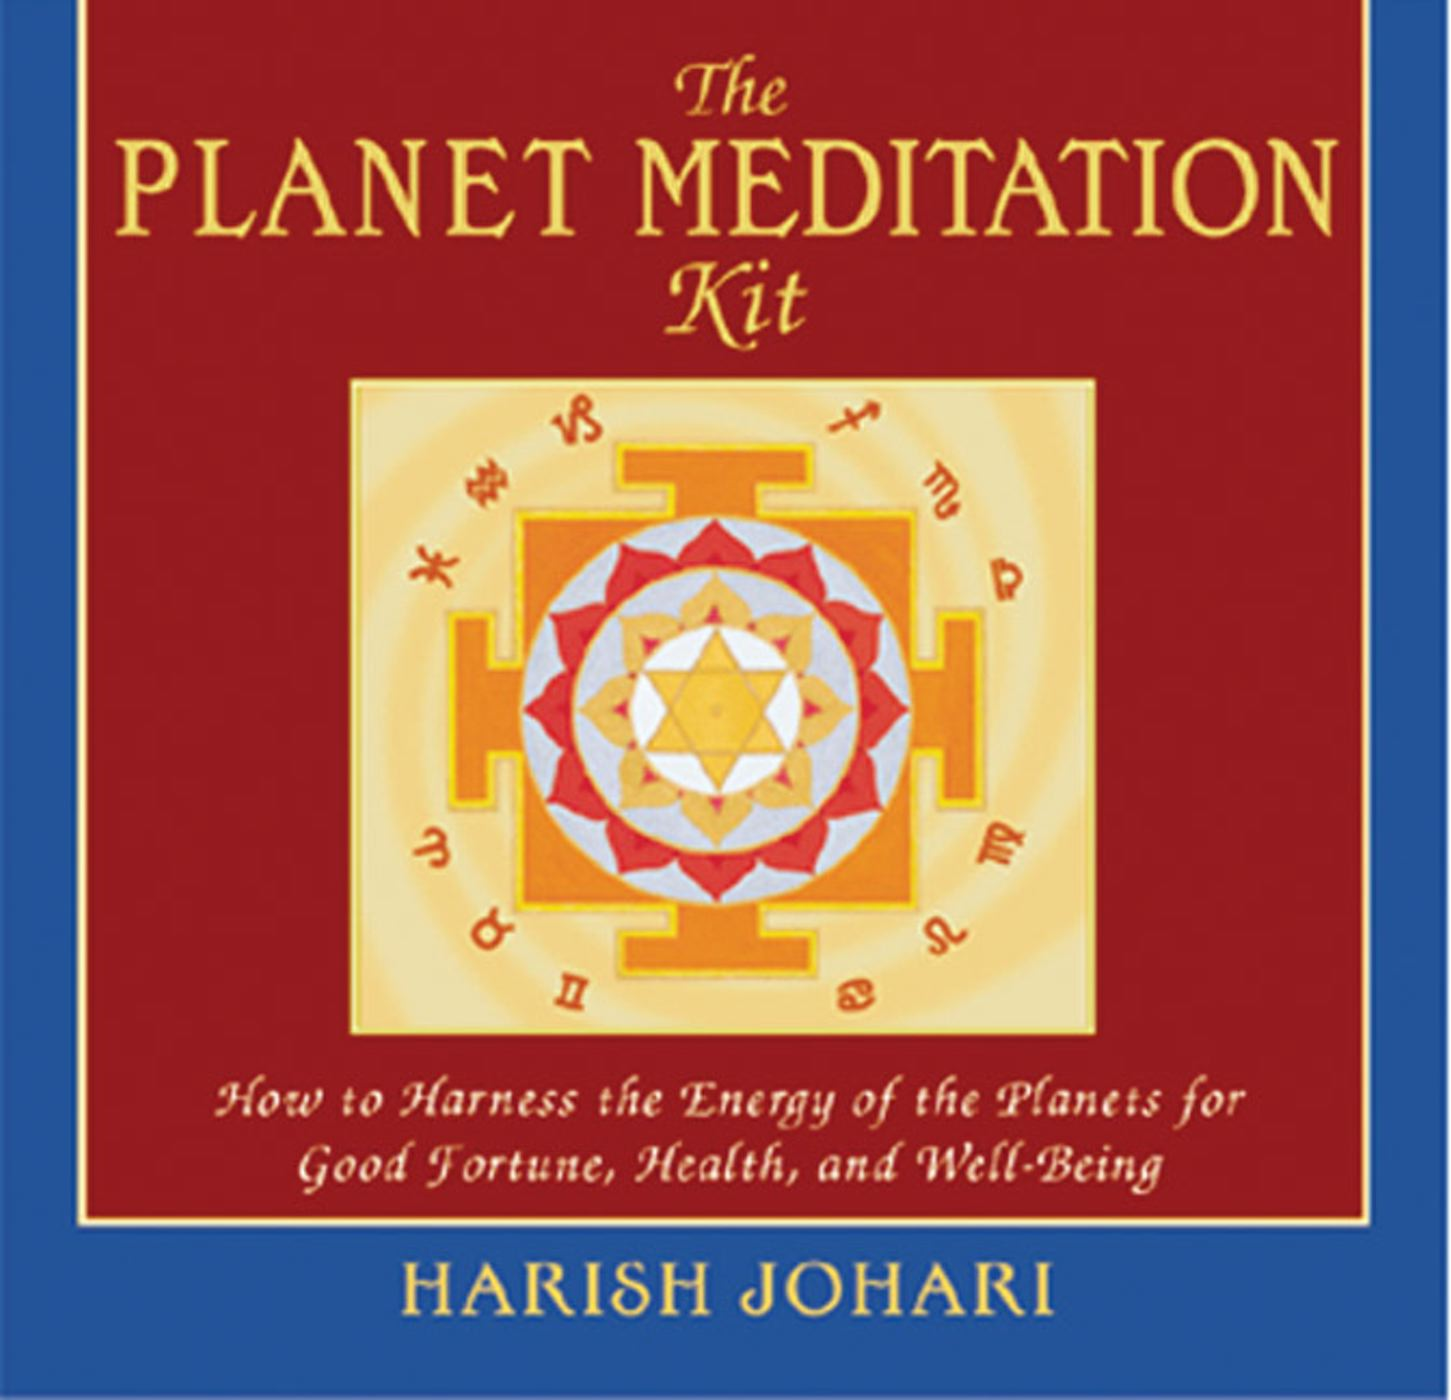 Harish johari official publisher page simon schuster for Ayurvedic healing cuisine harish johari